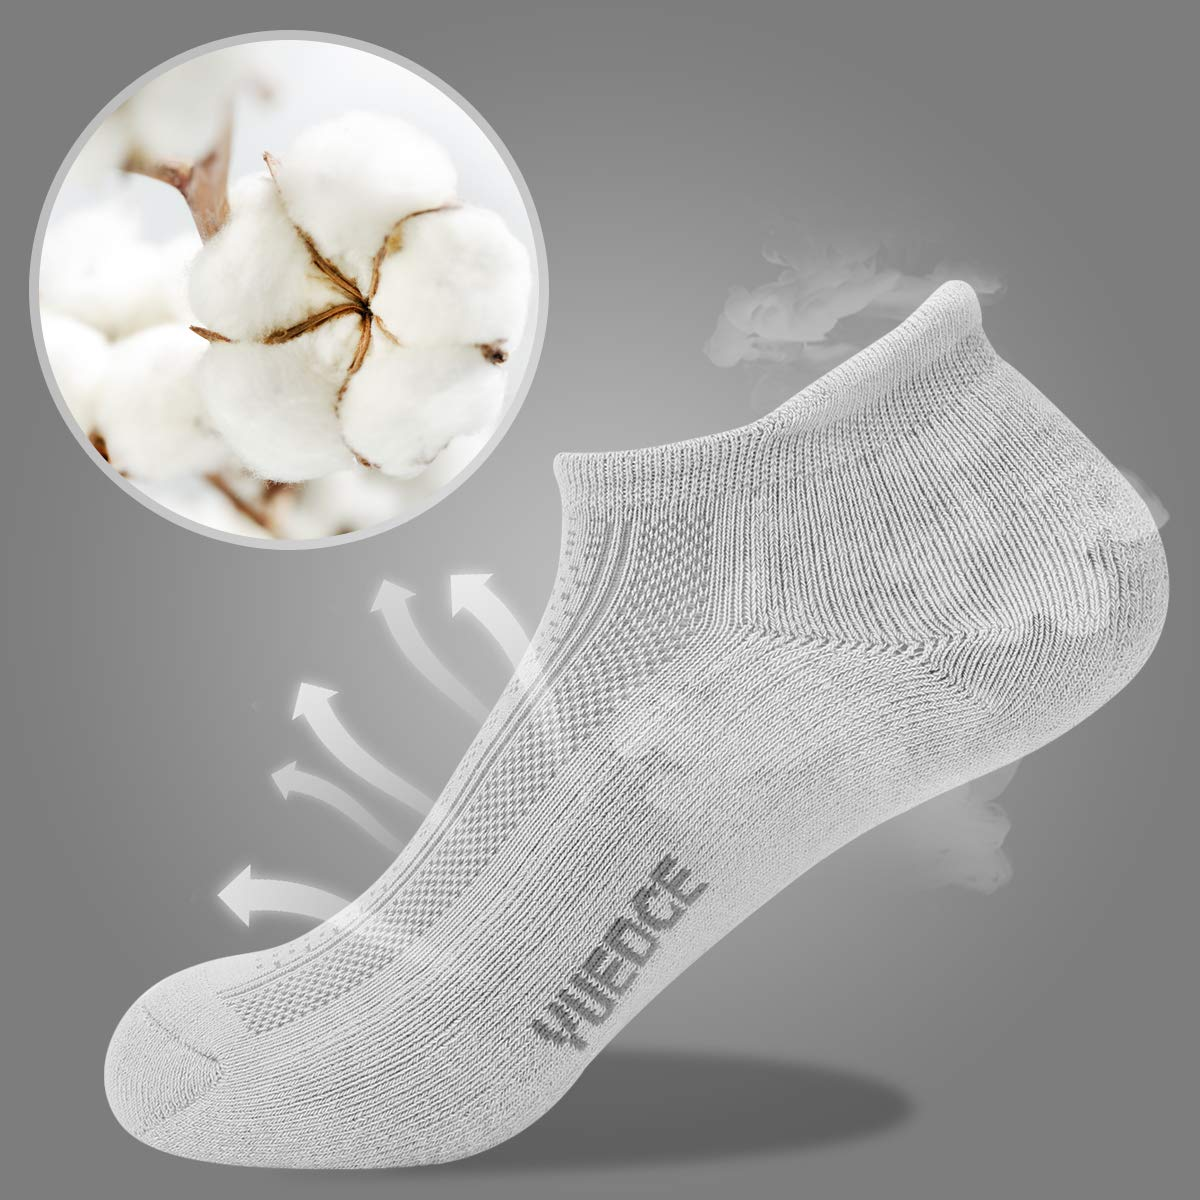 YUEDGE 3 Pairs Unisex Sports Performance Cushion Low Cut No Show Athletic Socks Sneaker Trainer Ankle Socks